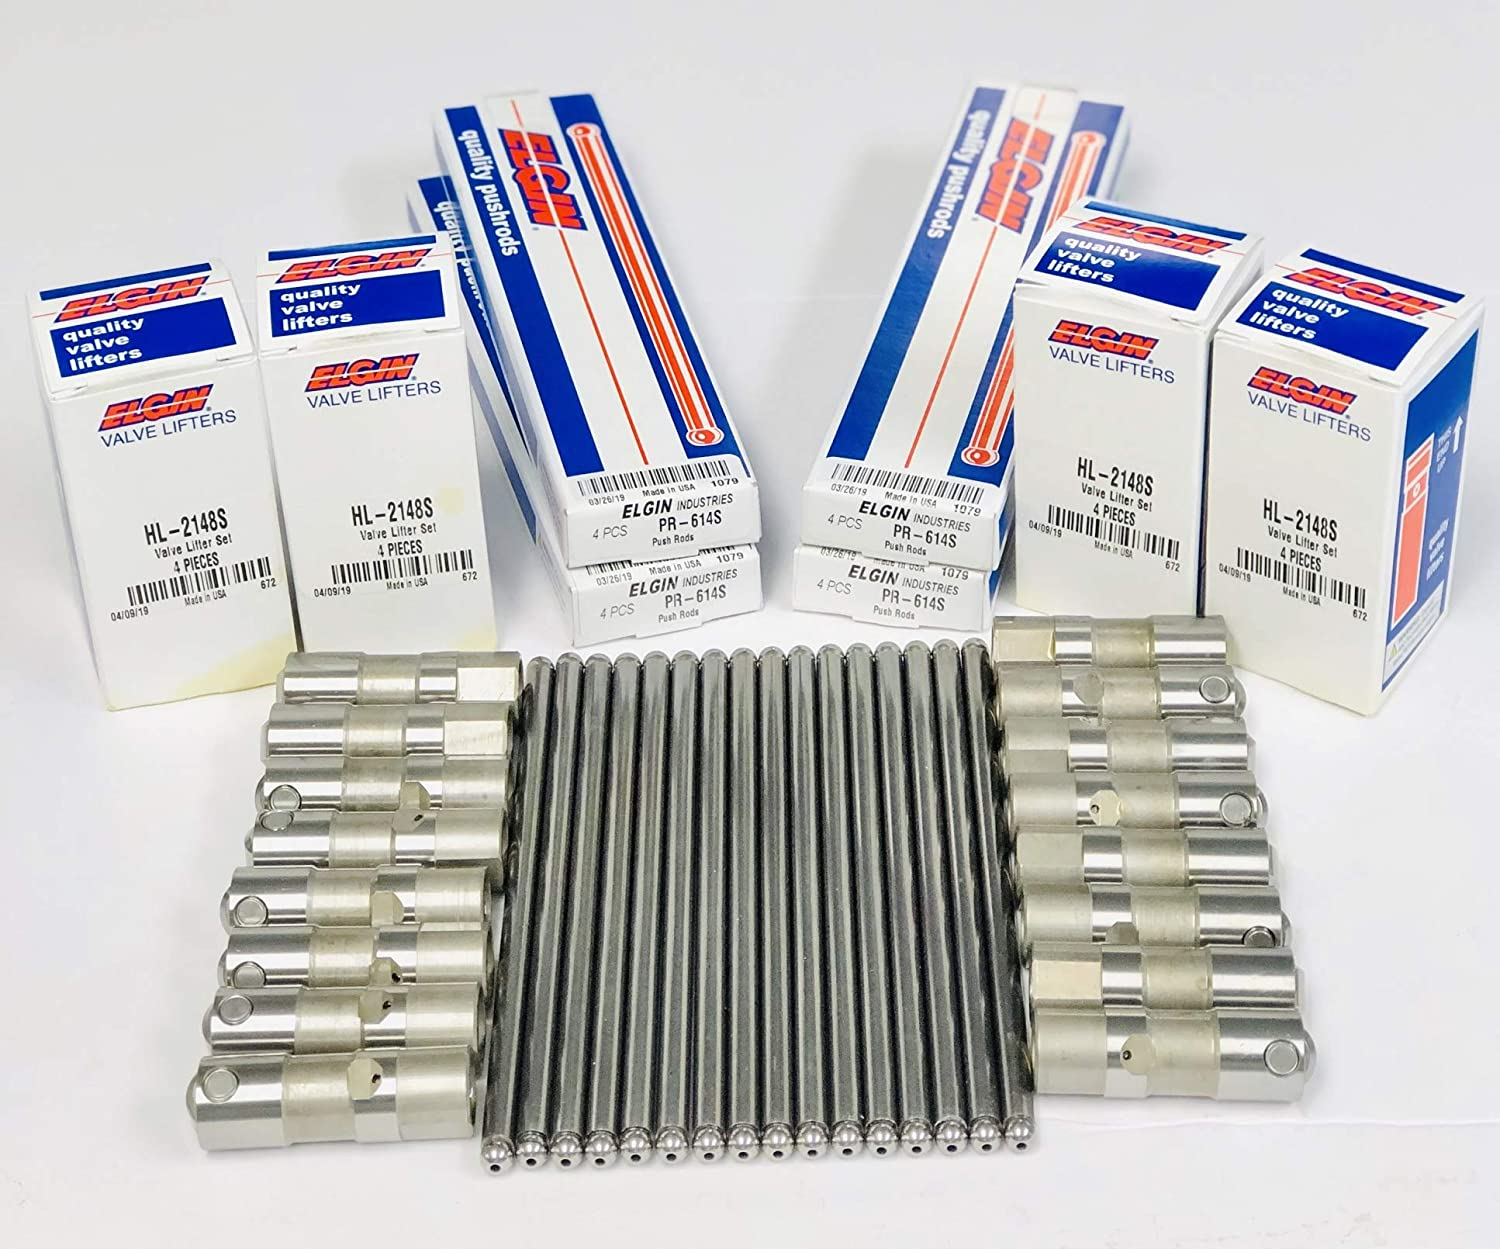 New Pushrods /& Lifters Set Fits 1999-2016 GM 6.0L /& 6.2L LS Engines 8 each